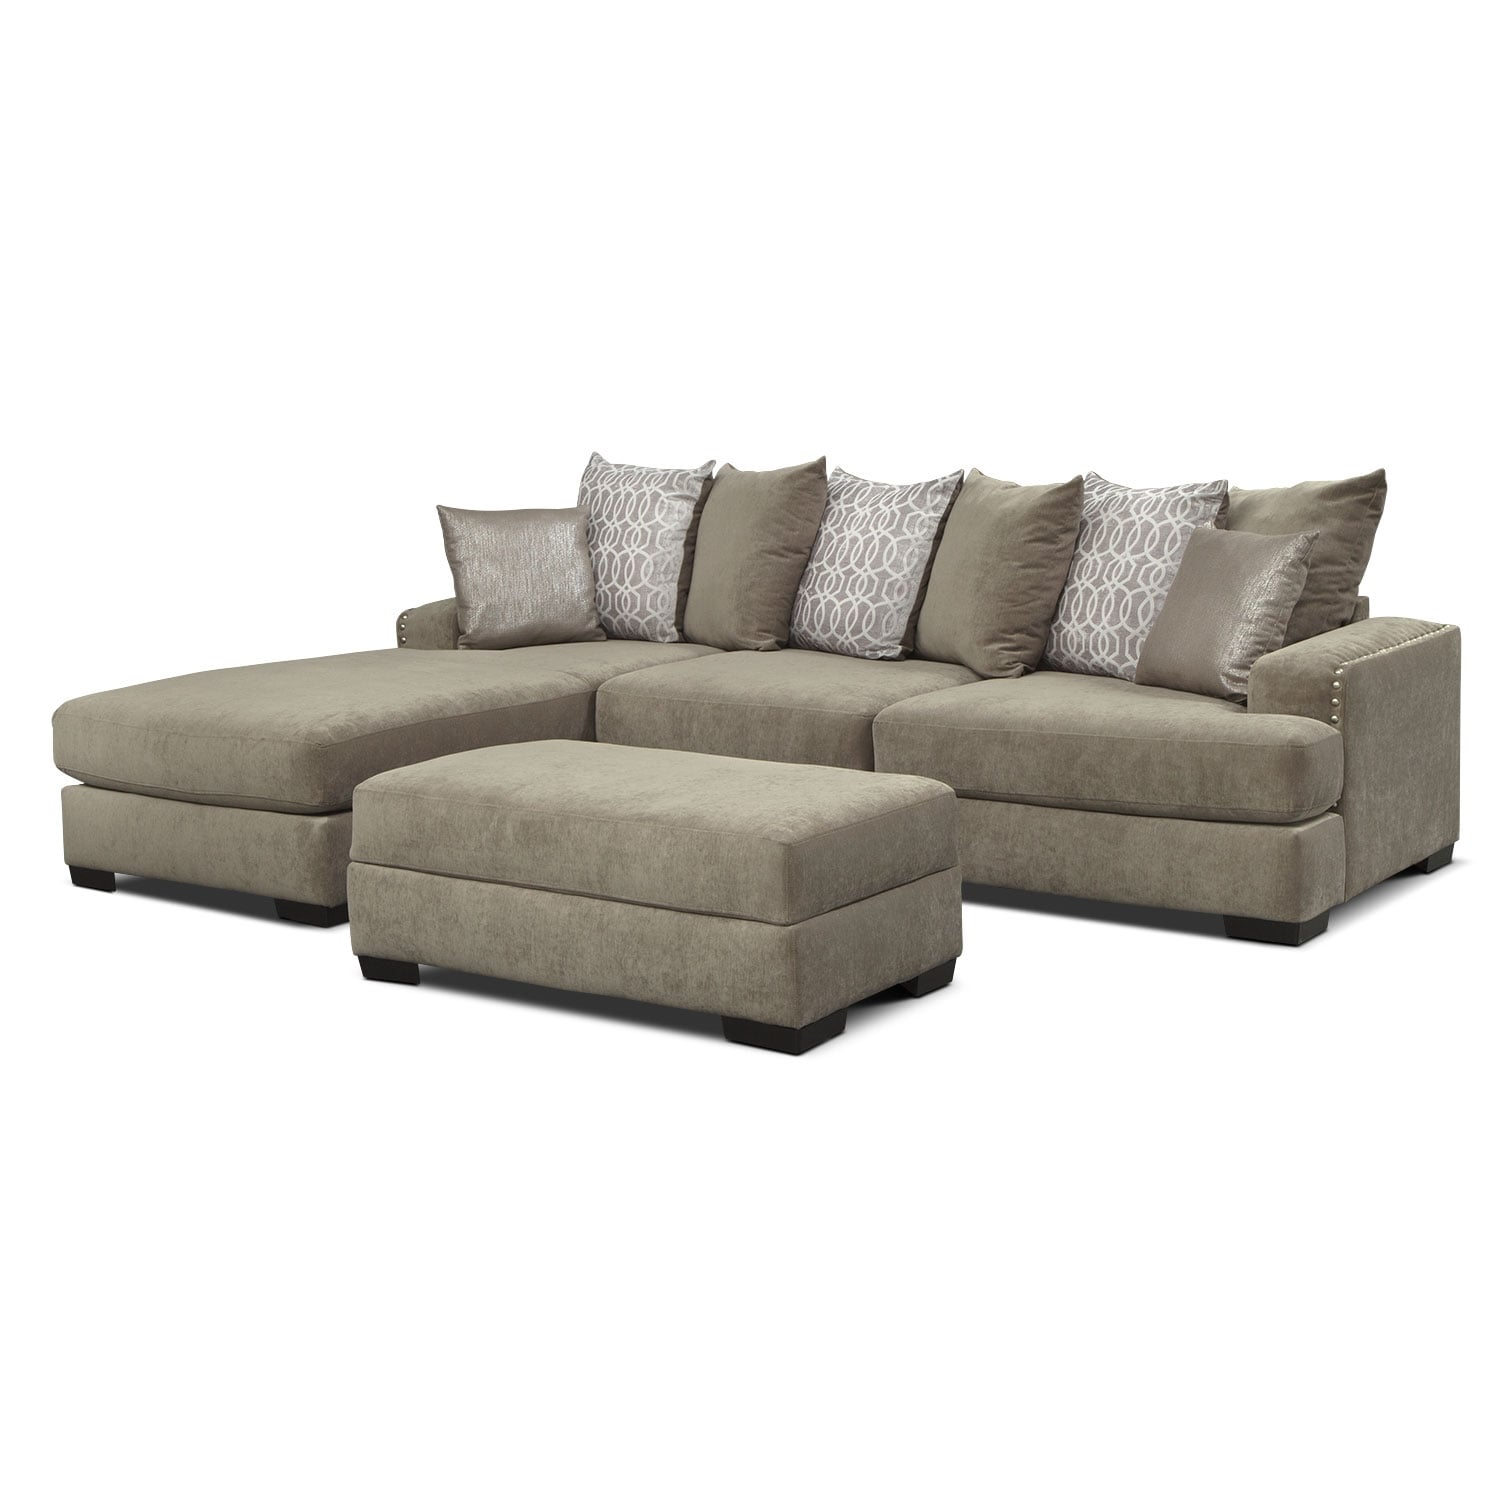 Living Room Furniture - Tempo 2-Piece Sectional with Left-Facing Chaise and Ottoman Set - Platinum